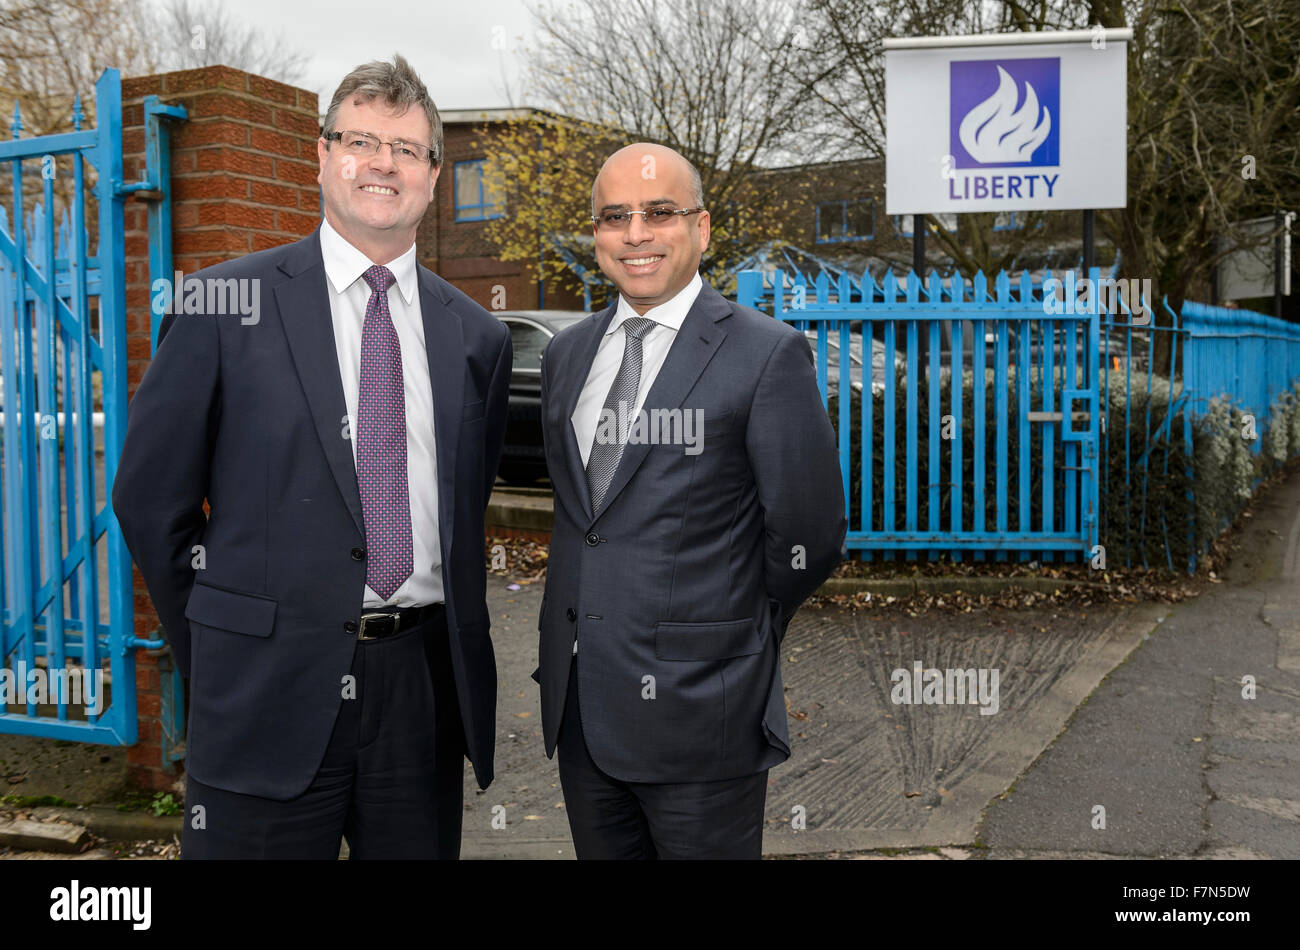 Caparo Tubular Solutions, Oldbury, West Midlands. 1st December 2015. Sanjeev Gupta CEO Liberty House (right) and Stock Photo